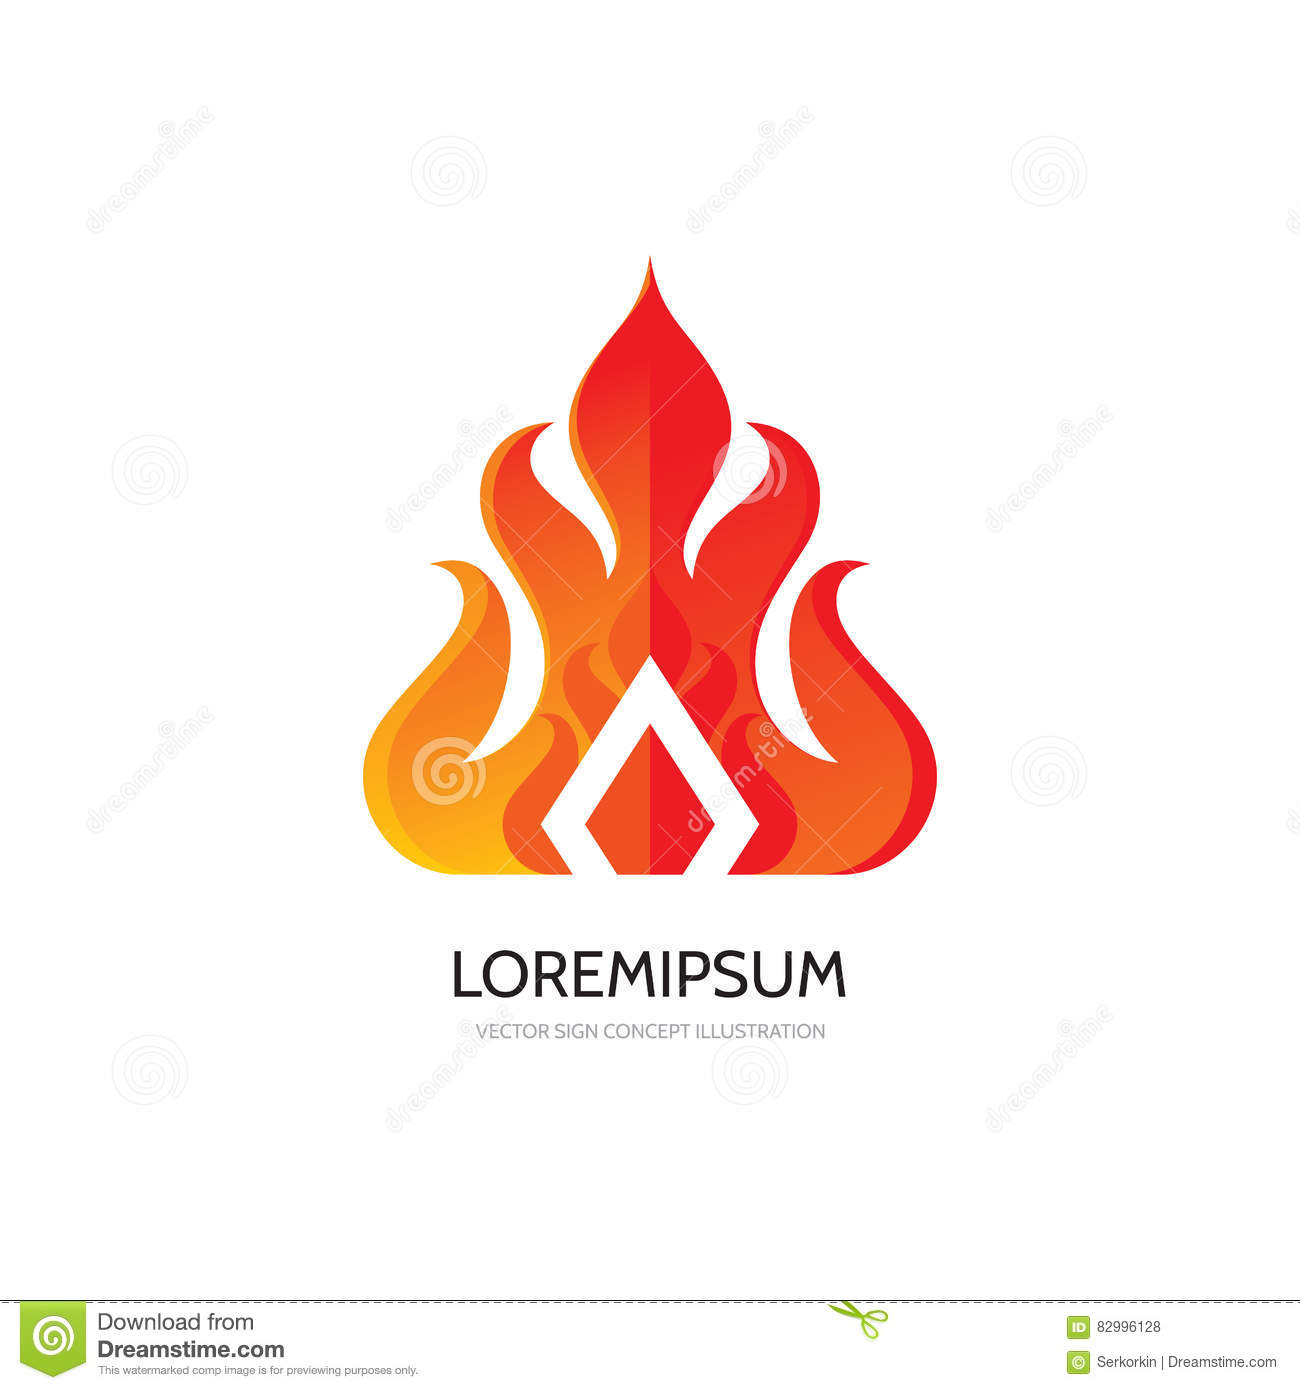 Abstract flame - vector logo template concept illustration. Fire sign. Decorative shape. Ethnic design element